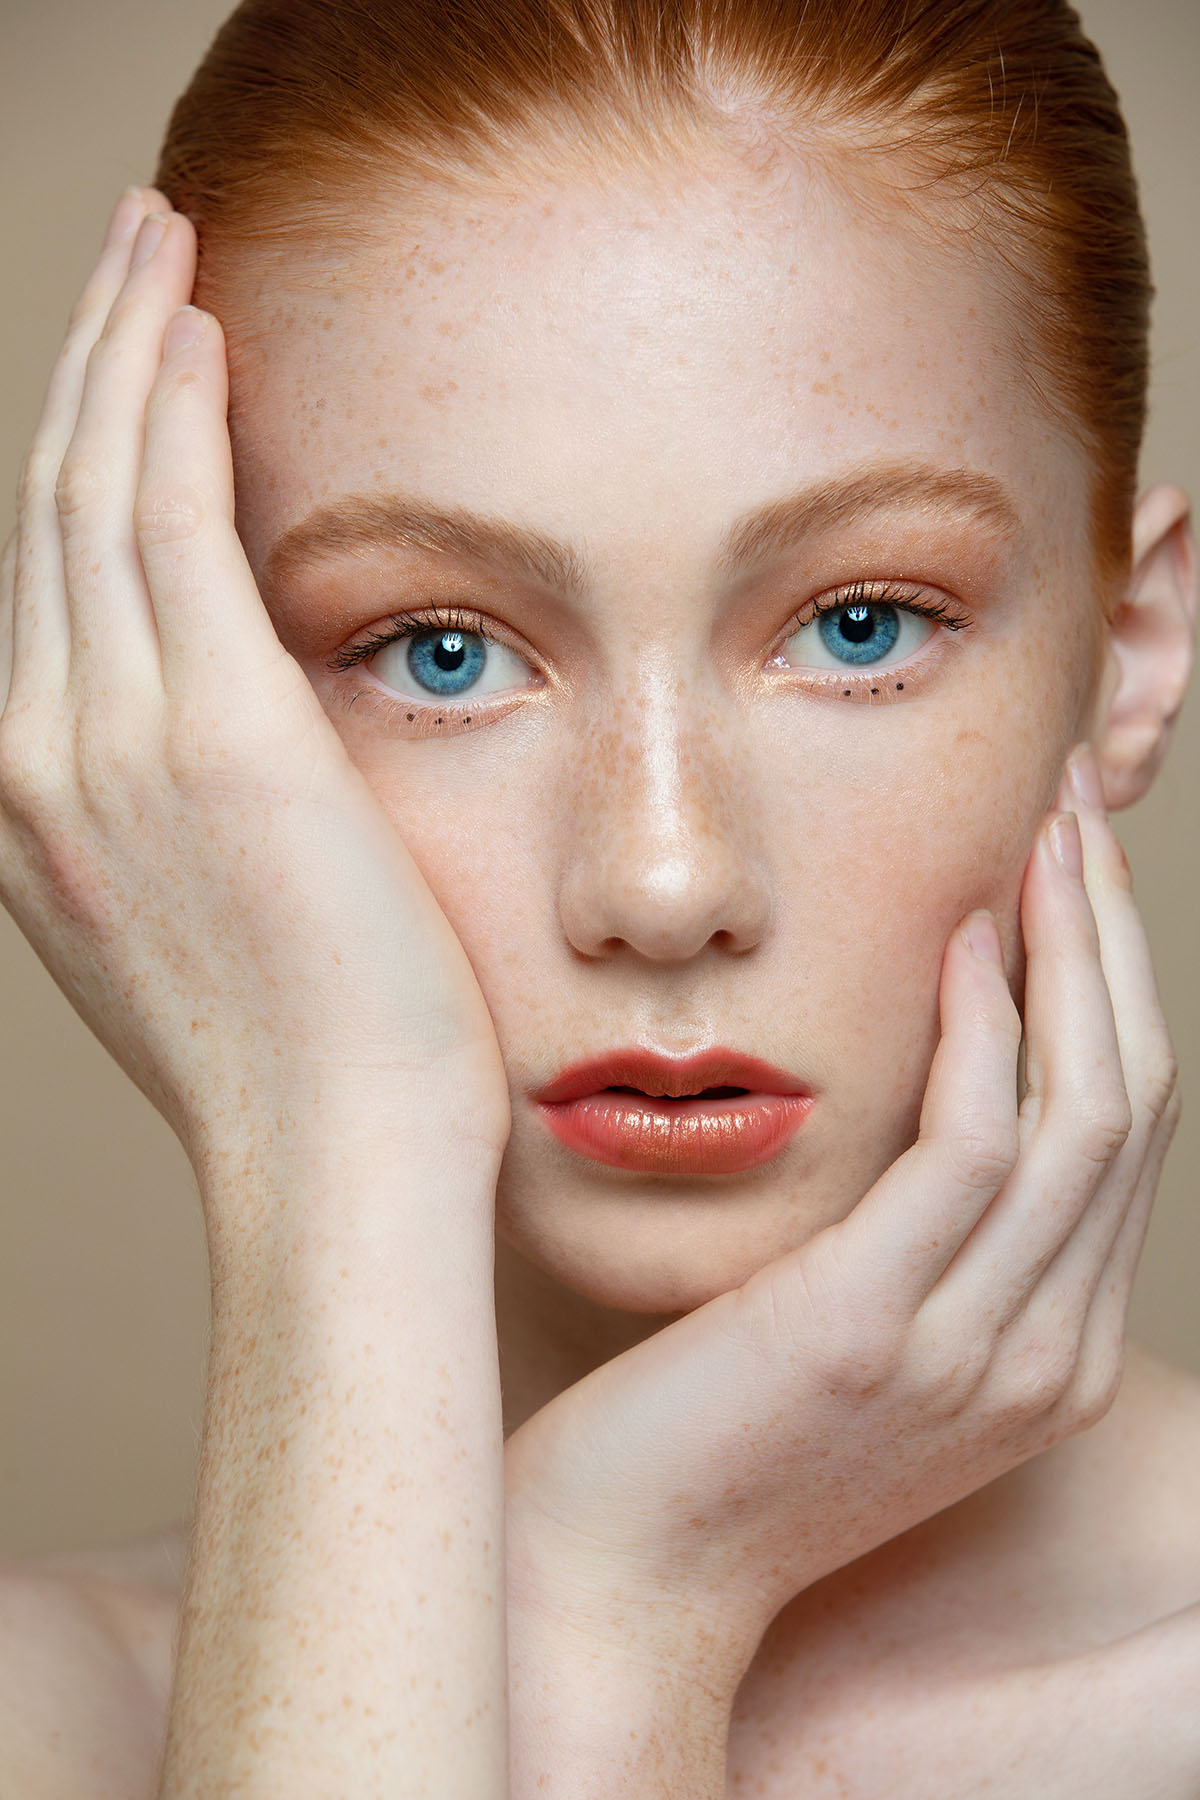 Beauty editorial 'Blue Sapphire Eyes' by Loesje Kessels Fashion Photographer Dubai